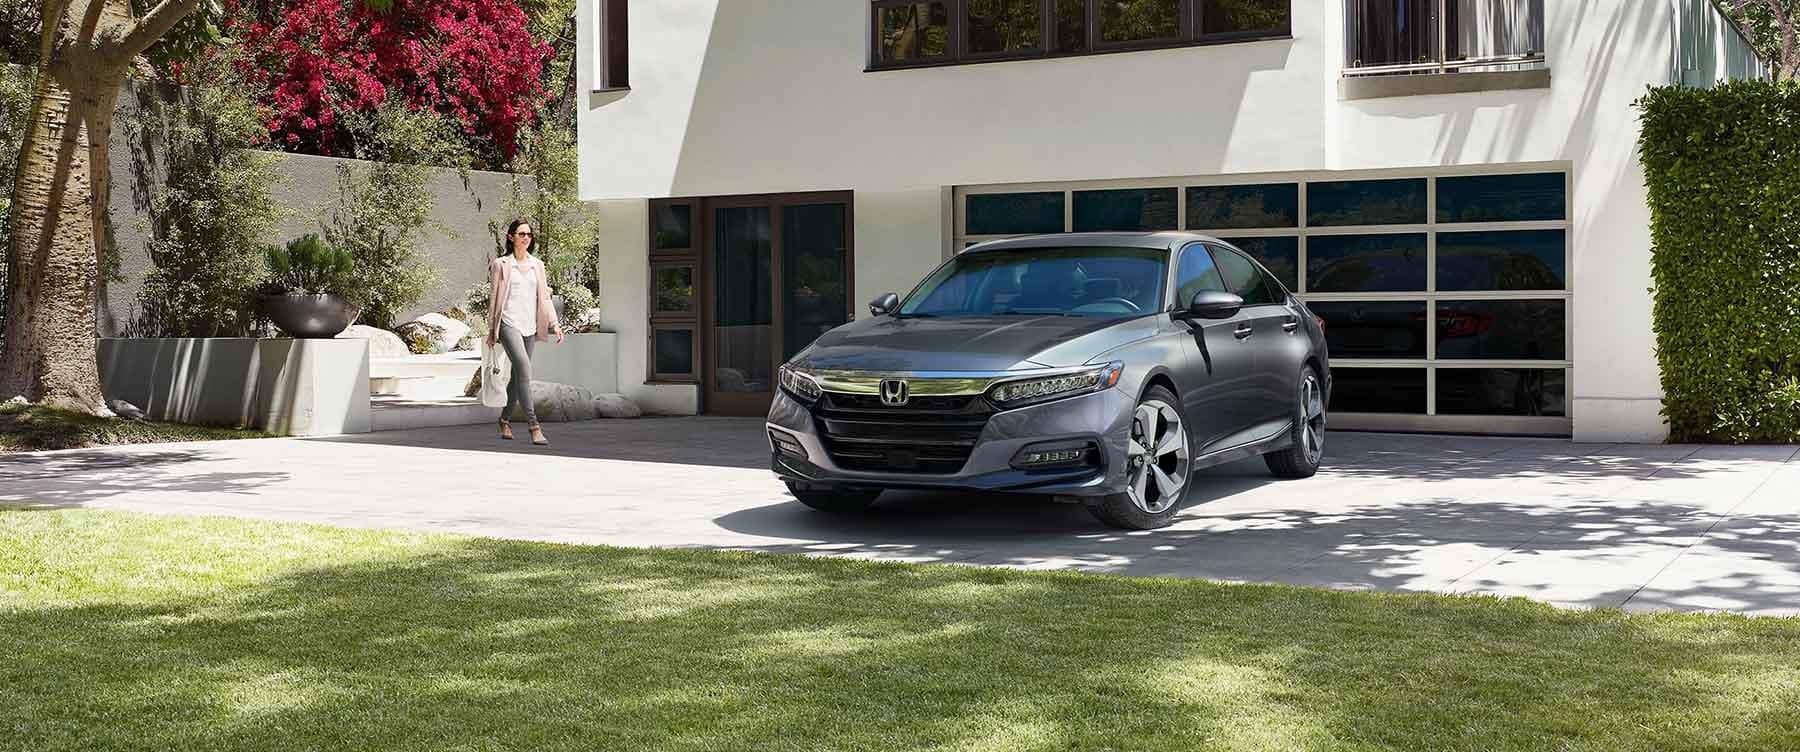 2018 Honda Accord Technology Features